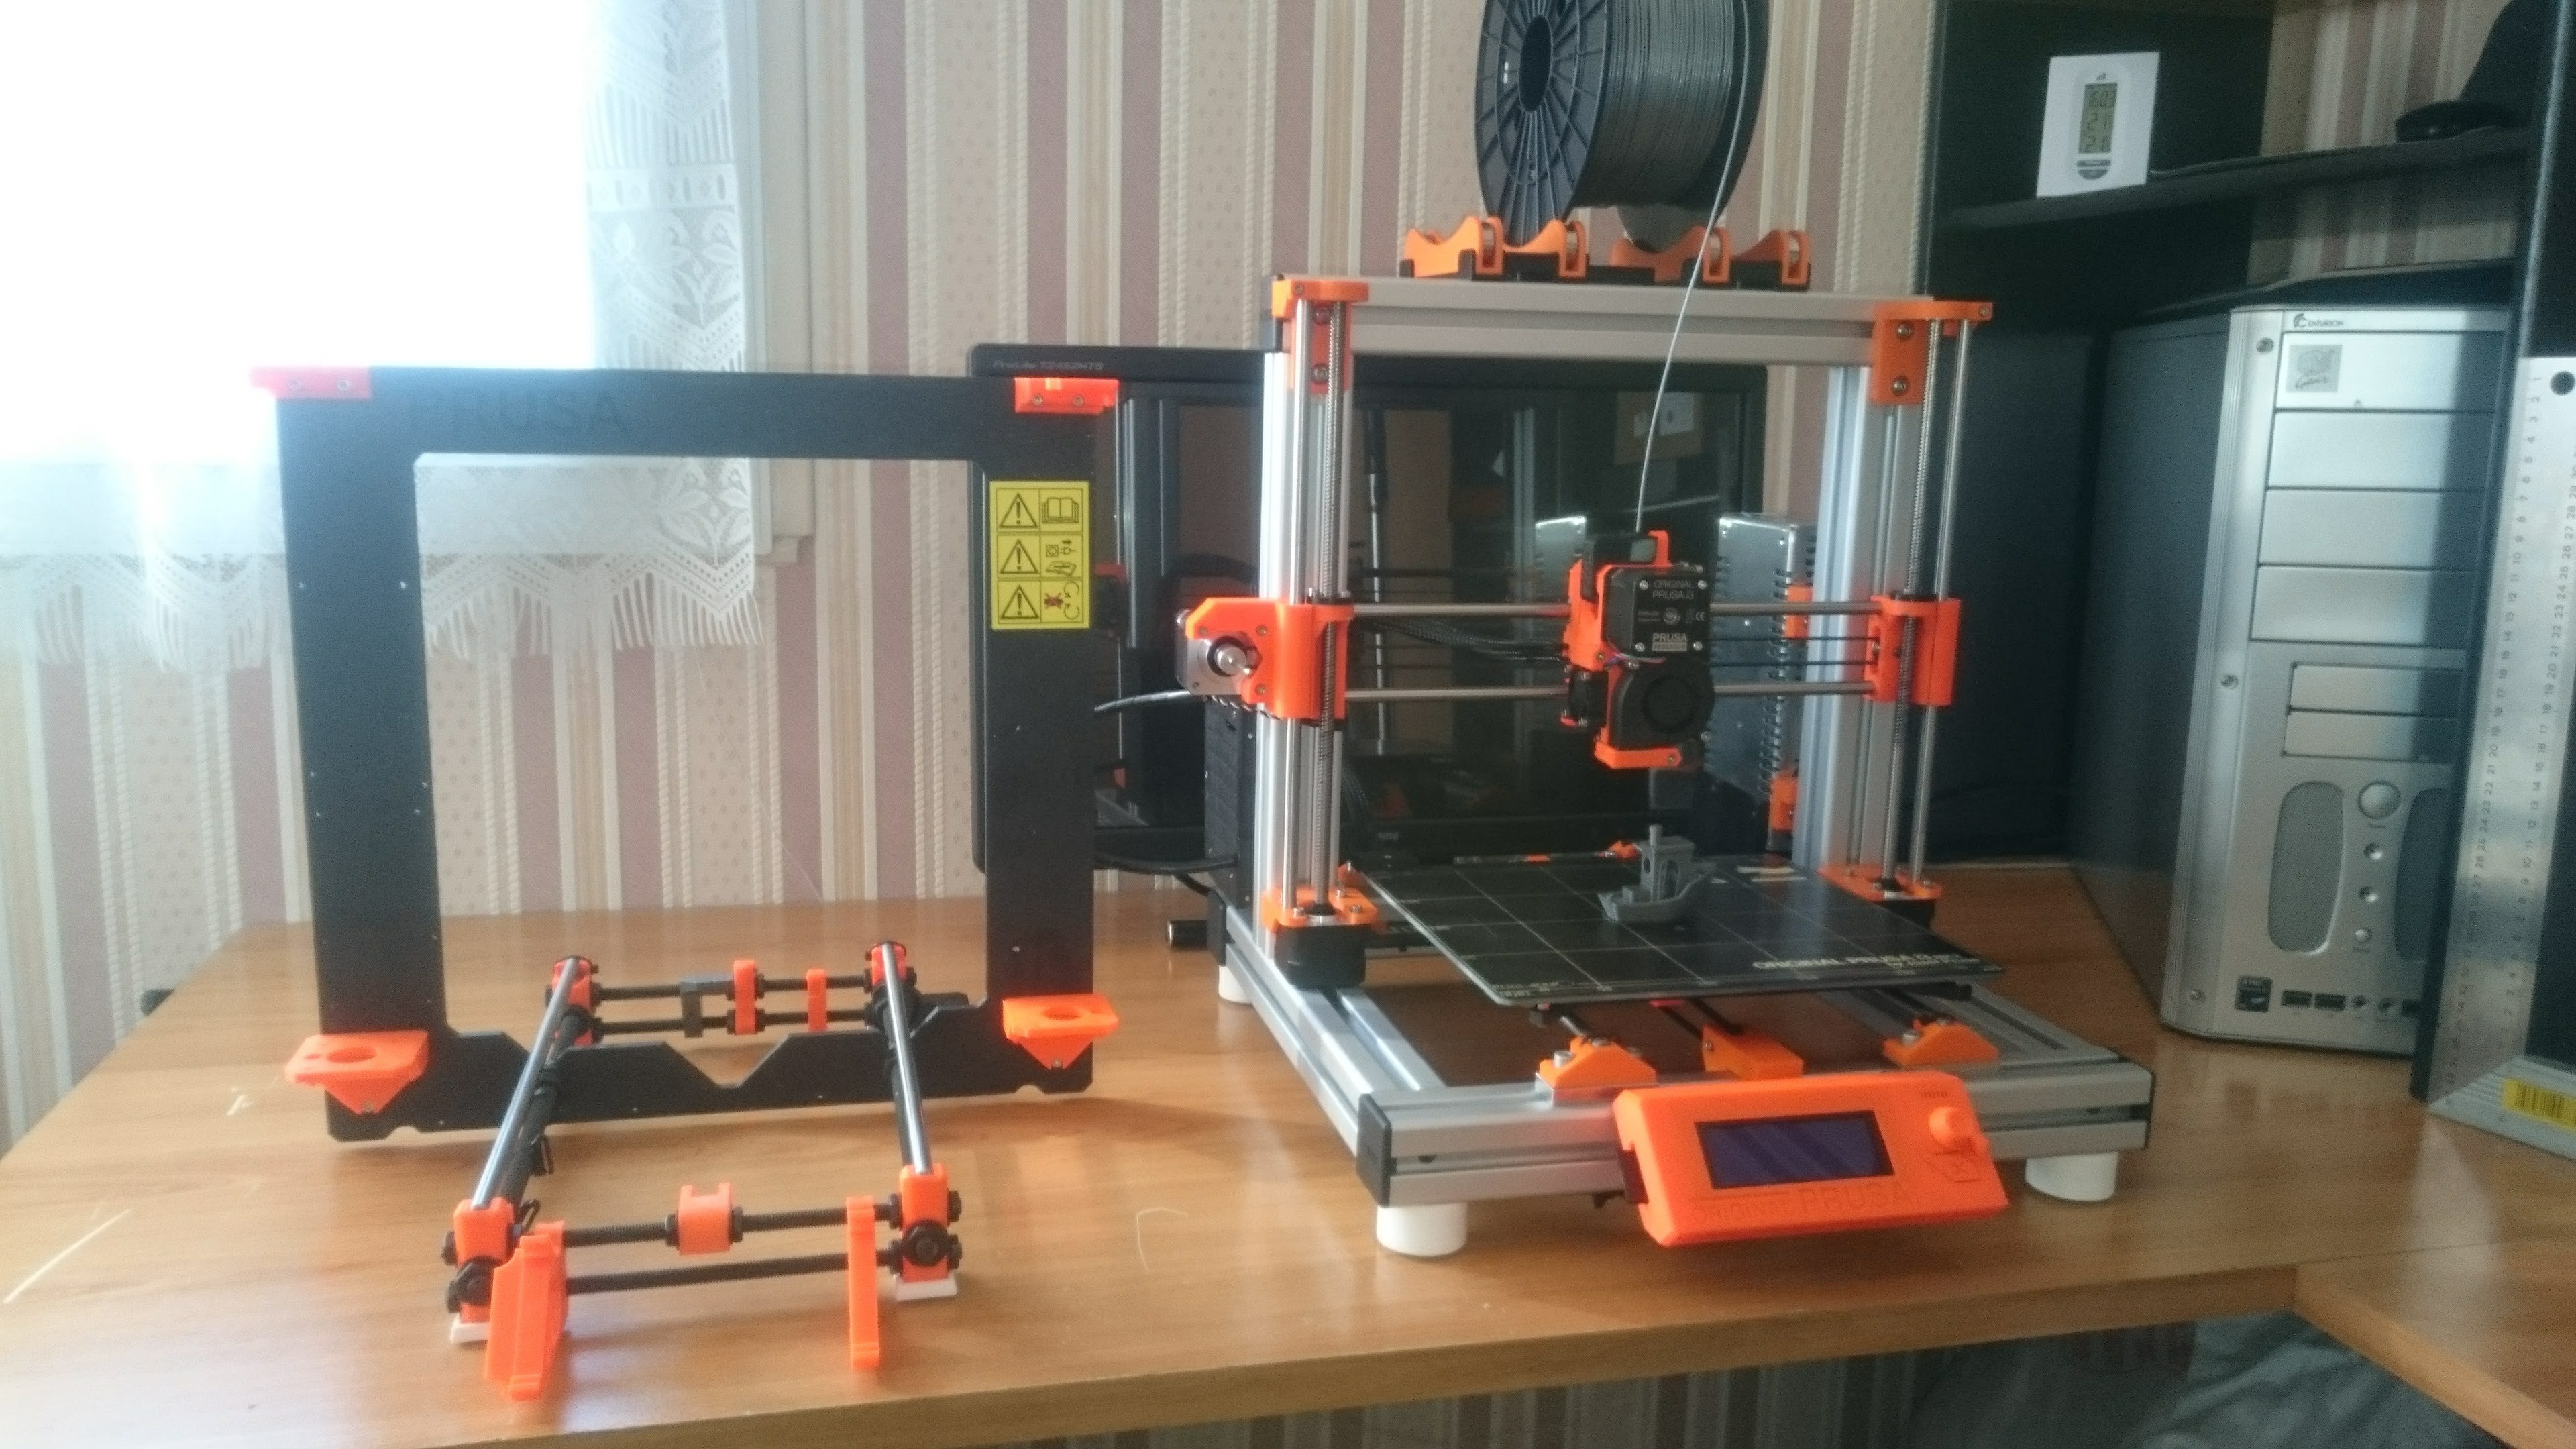 DSC_1048.jpg Download free STL file Modified Prusa i3 MK2S • 3D printer model, Ldom21